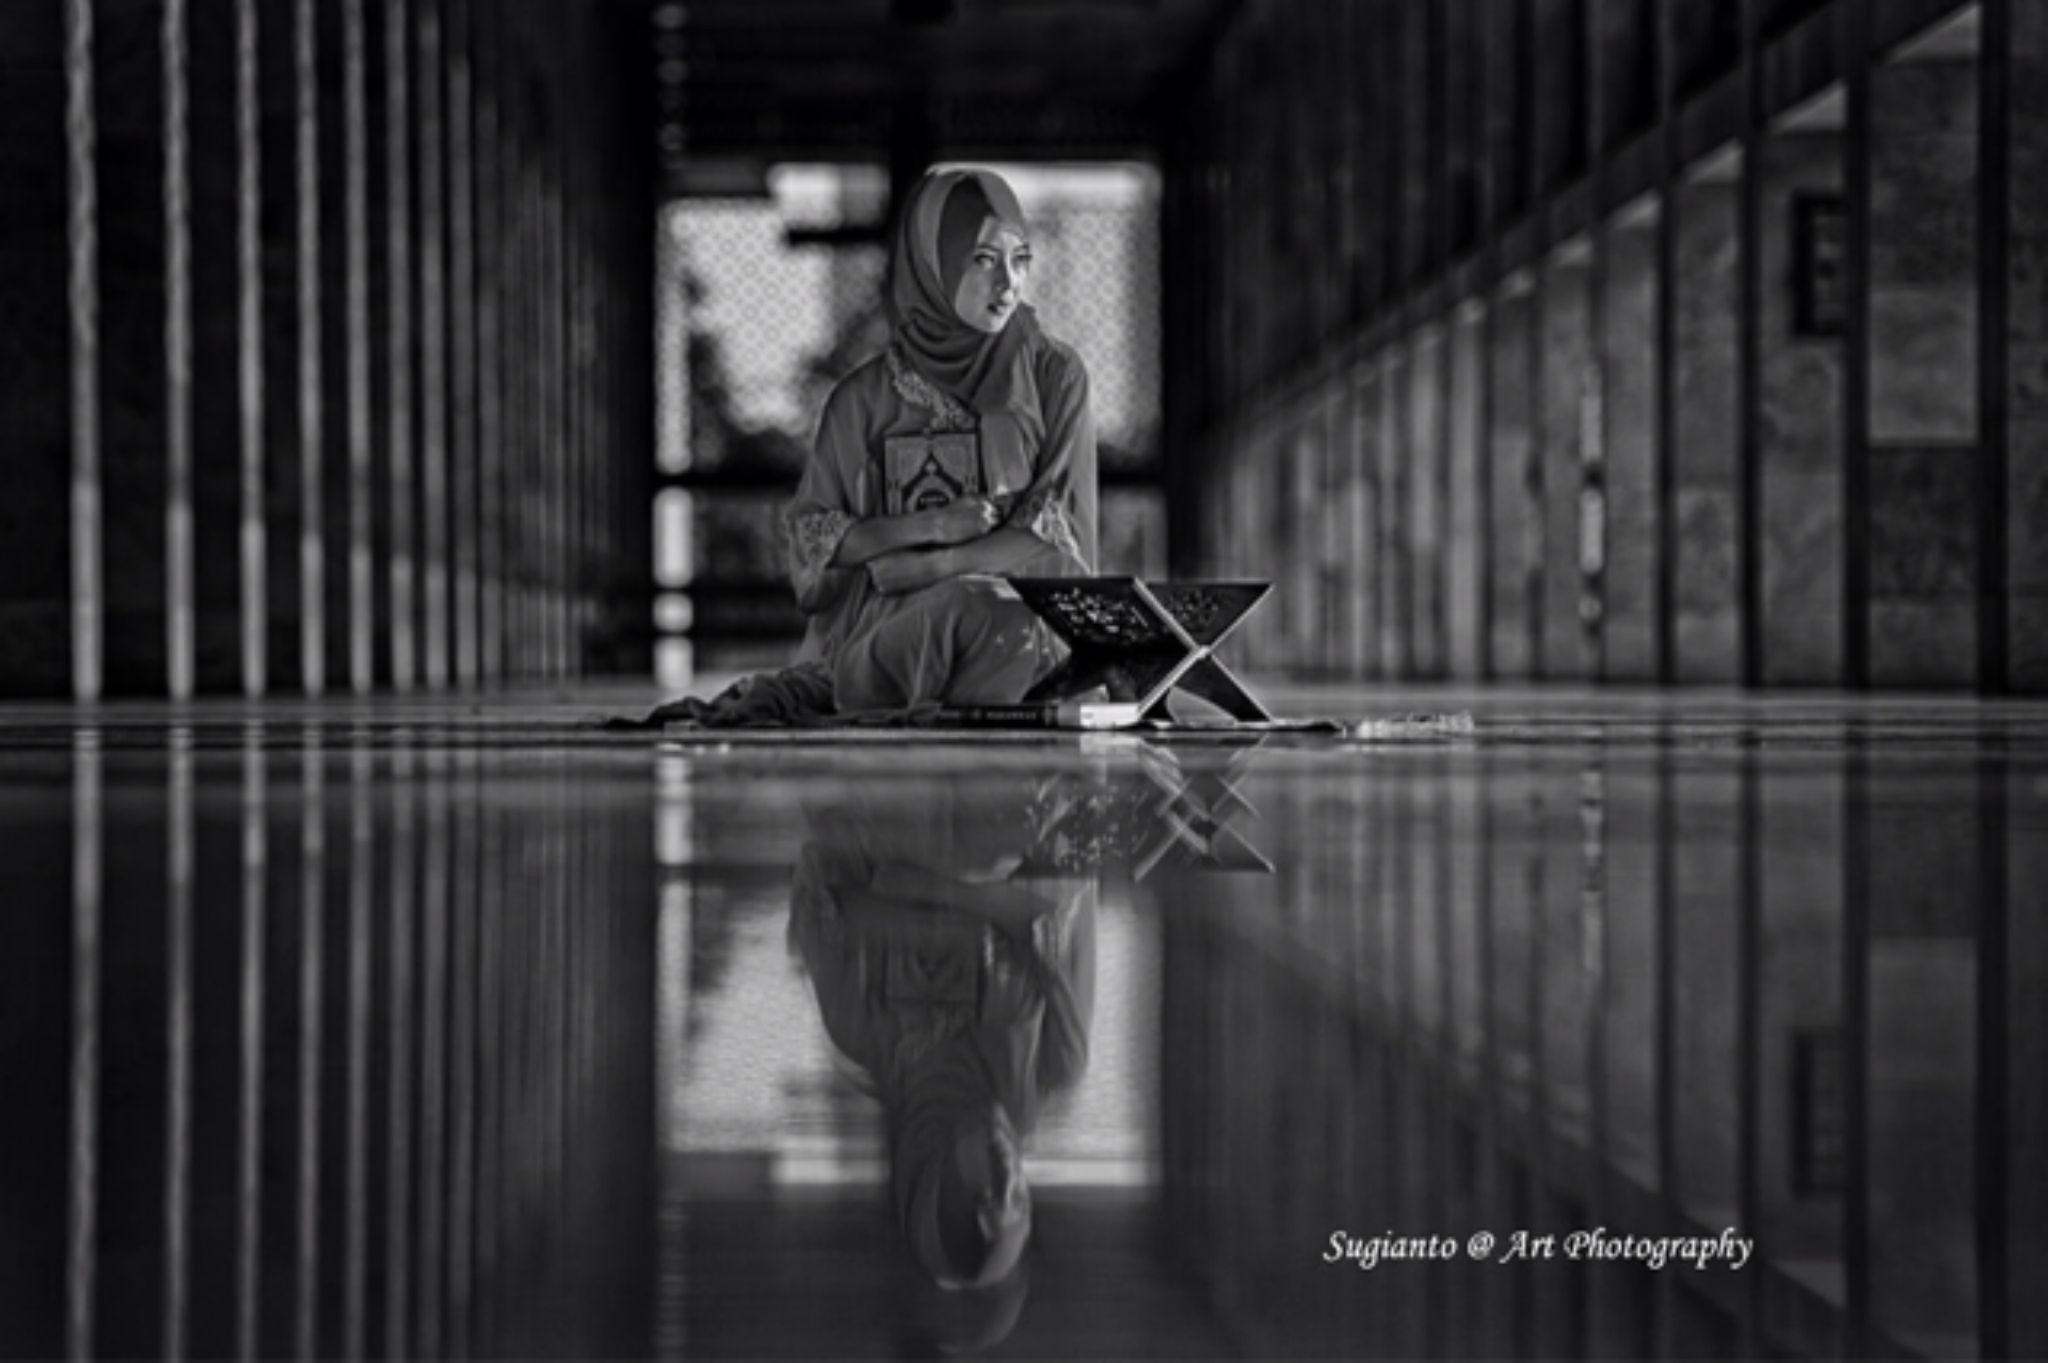 IMG_1117 by Sugianto